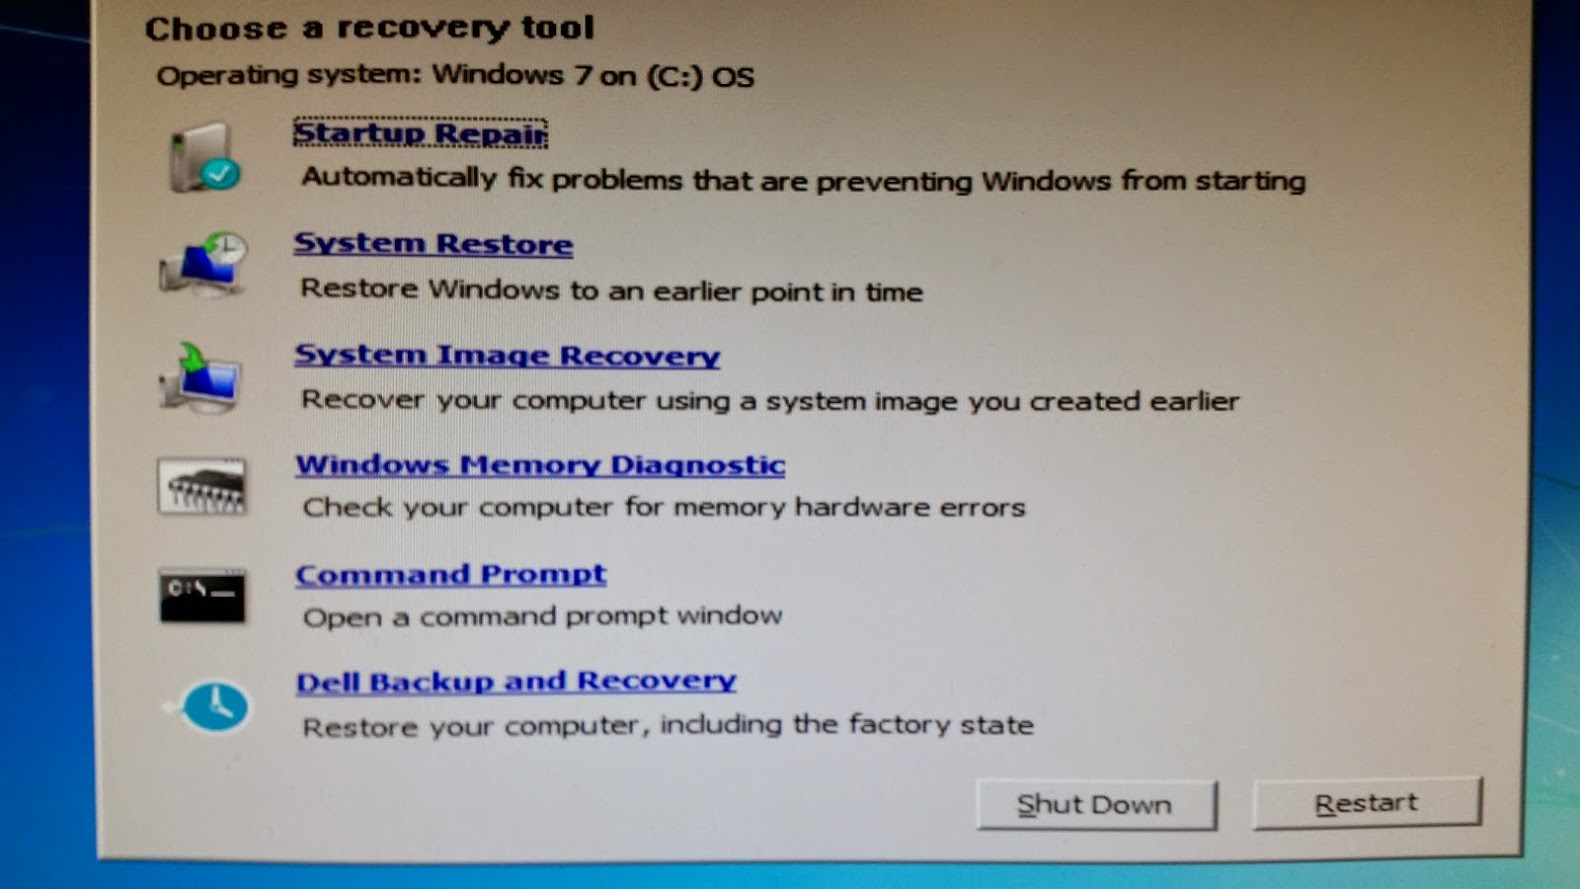 How to Back Up and Restore Data With Windows 7 PCWorld